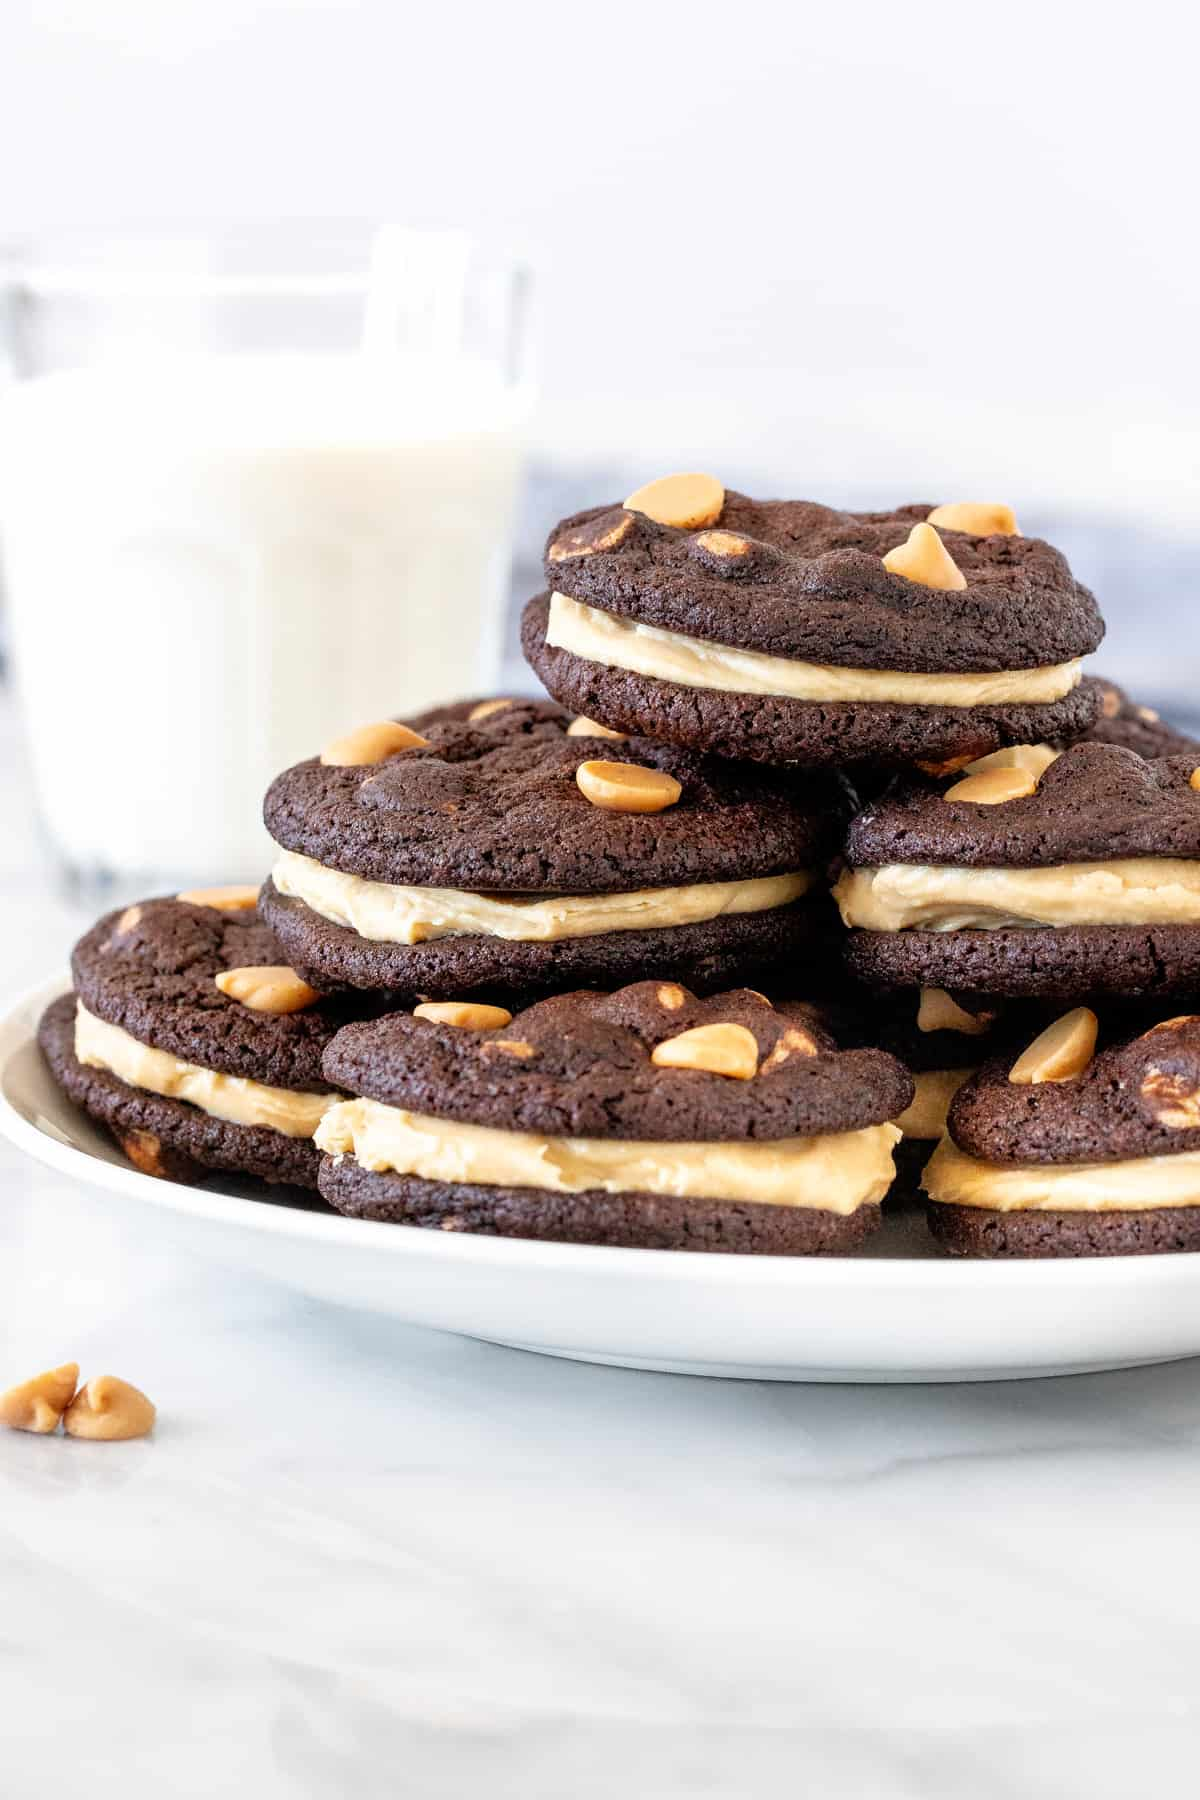 Plate of chocolate peanut butter sandwich cookies